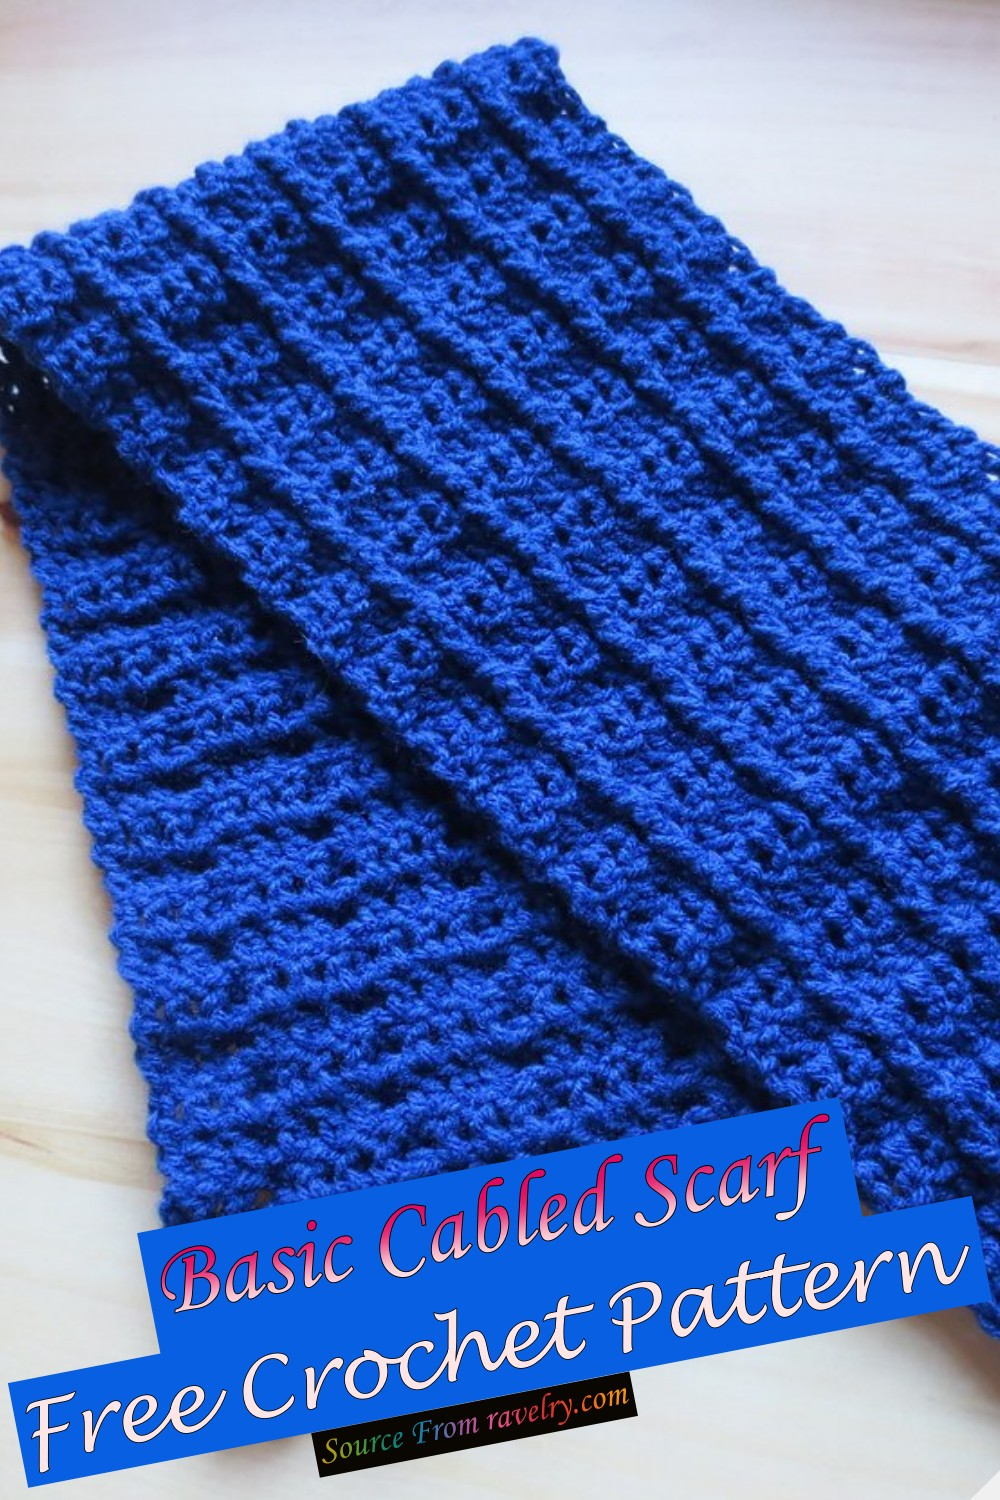 Free Crochet Basic Cabled Scarf Pattern